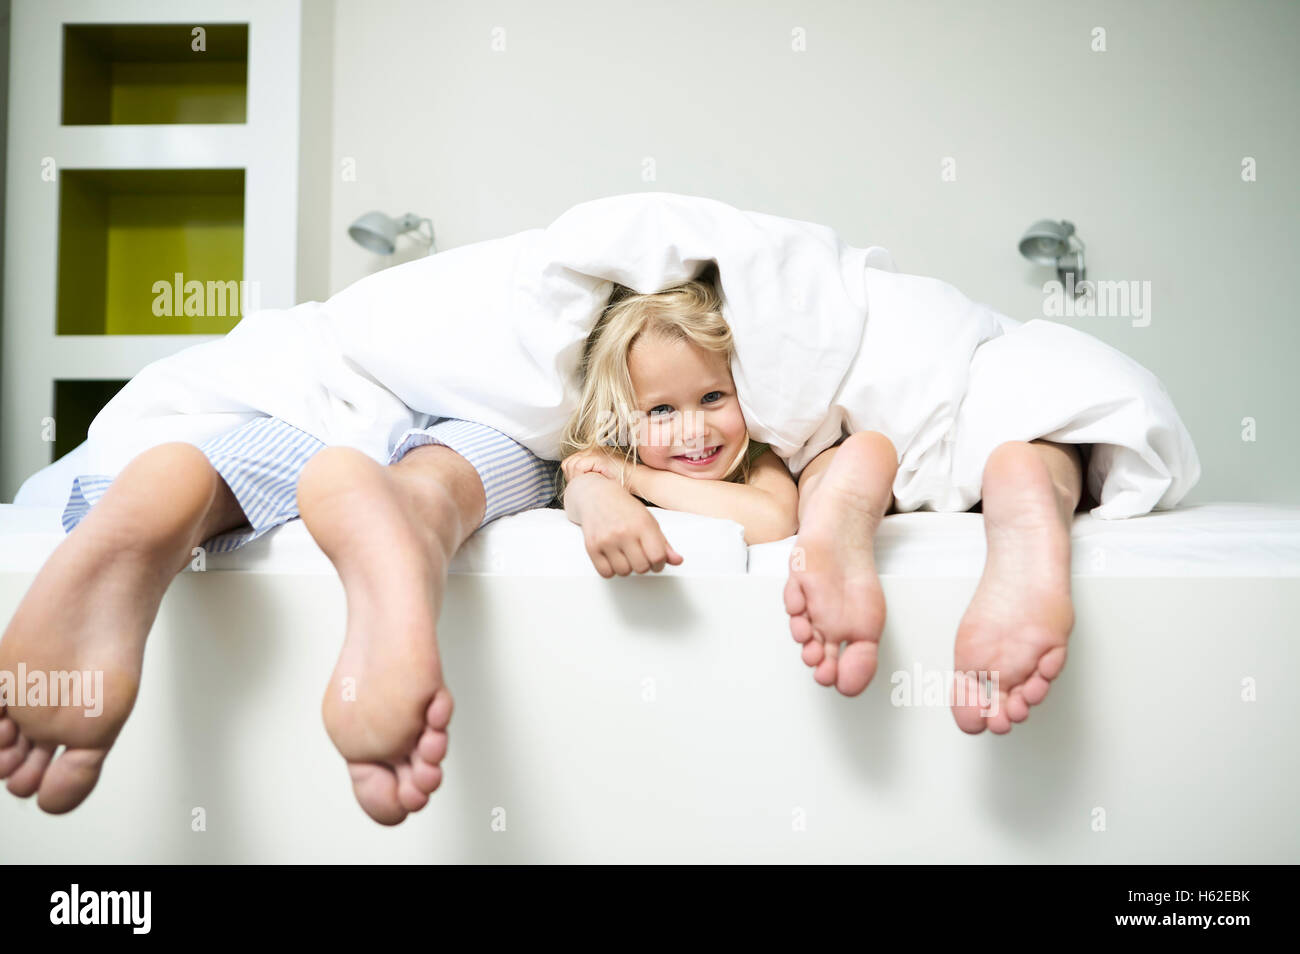 Family lying in bed of hotel room, daughter looking from between parents feet - Stock Image